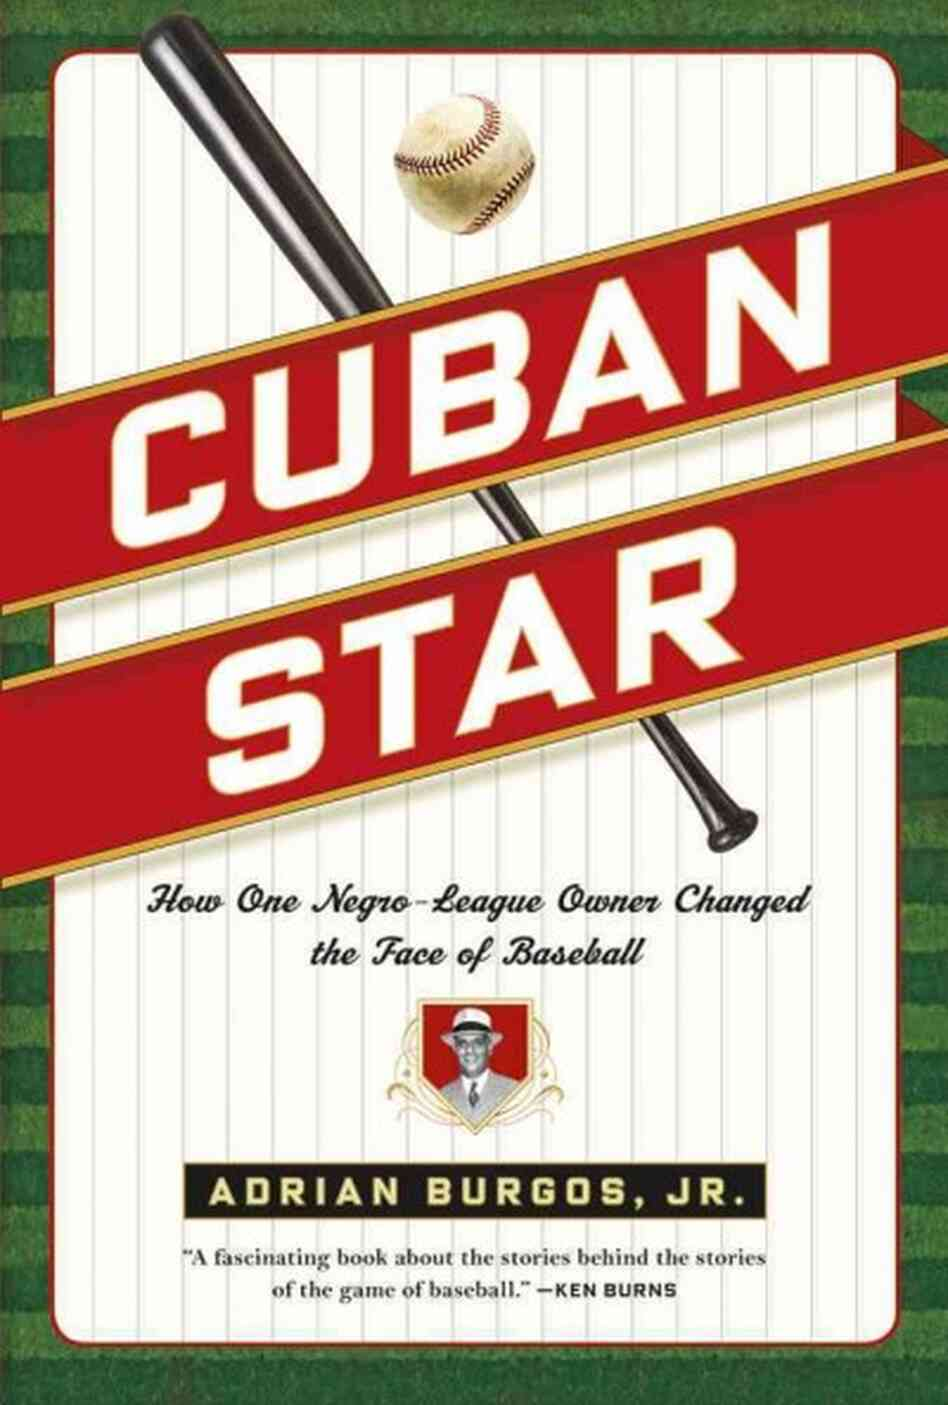 Cuban Star